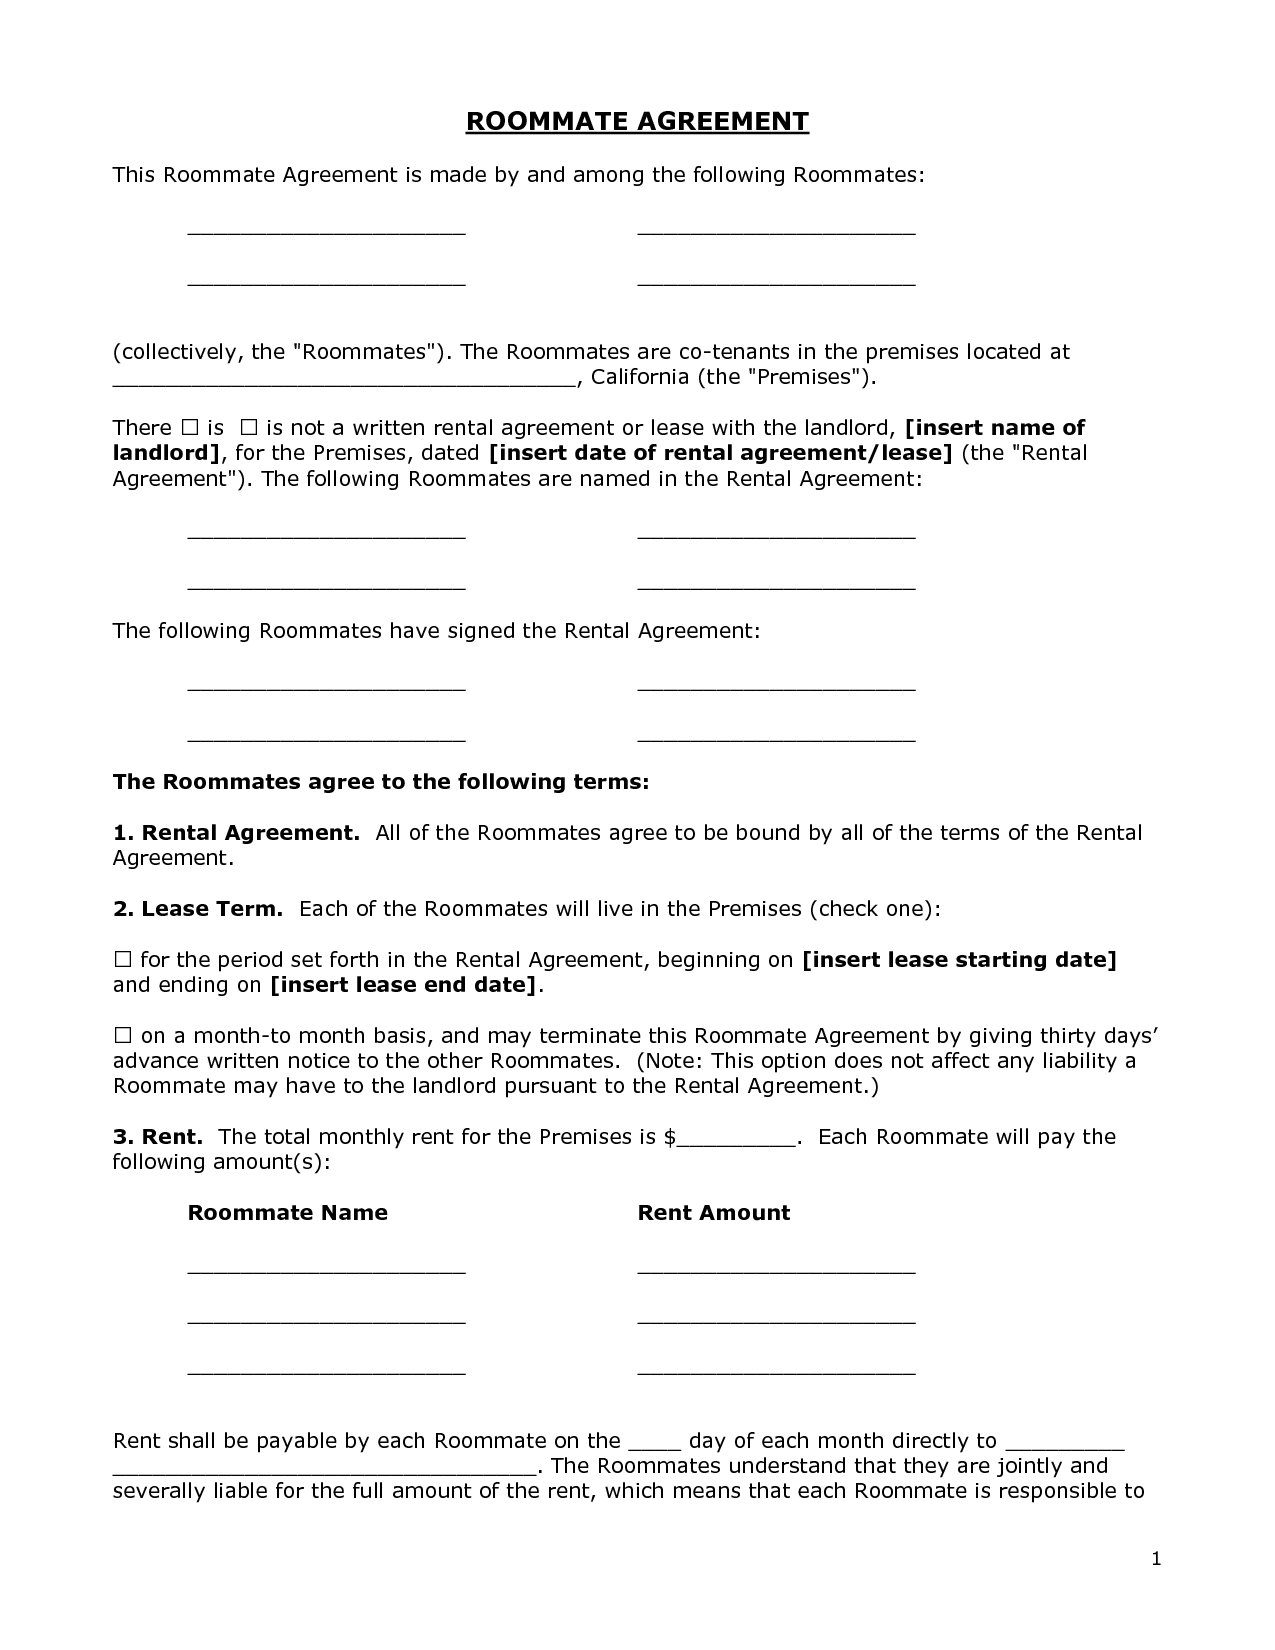 Renters Agreement Form - Docbgf31721 - Roommate Agreement - Free Printable Roommate Rental Agreement